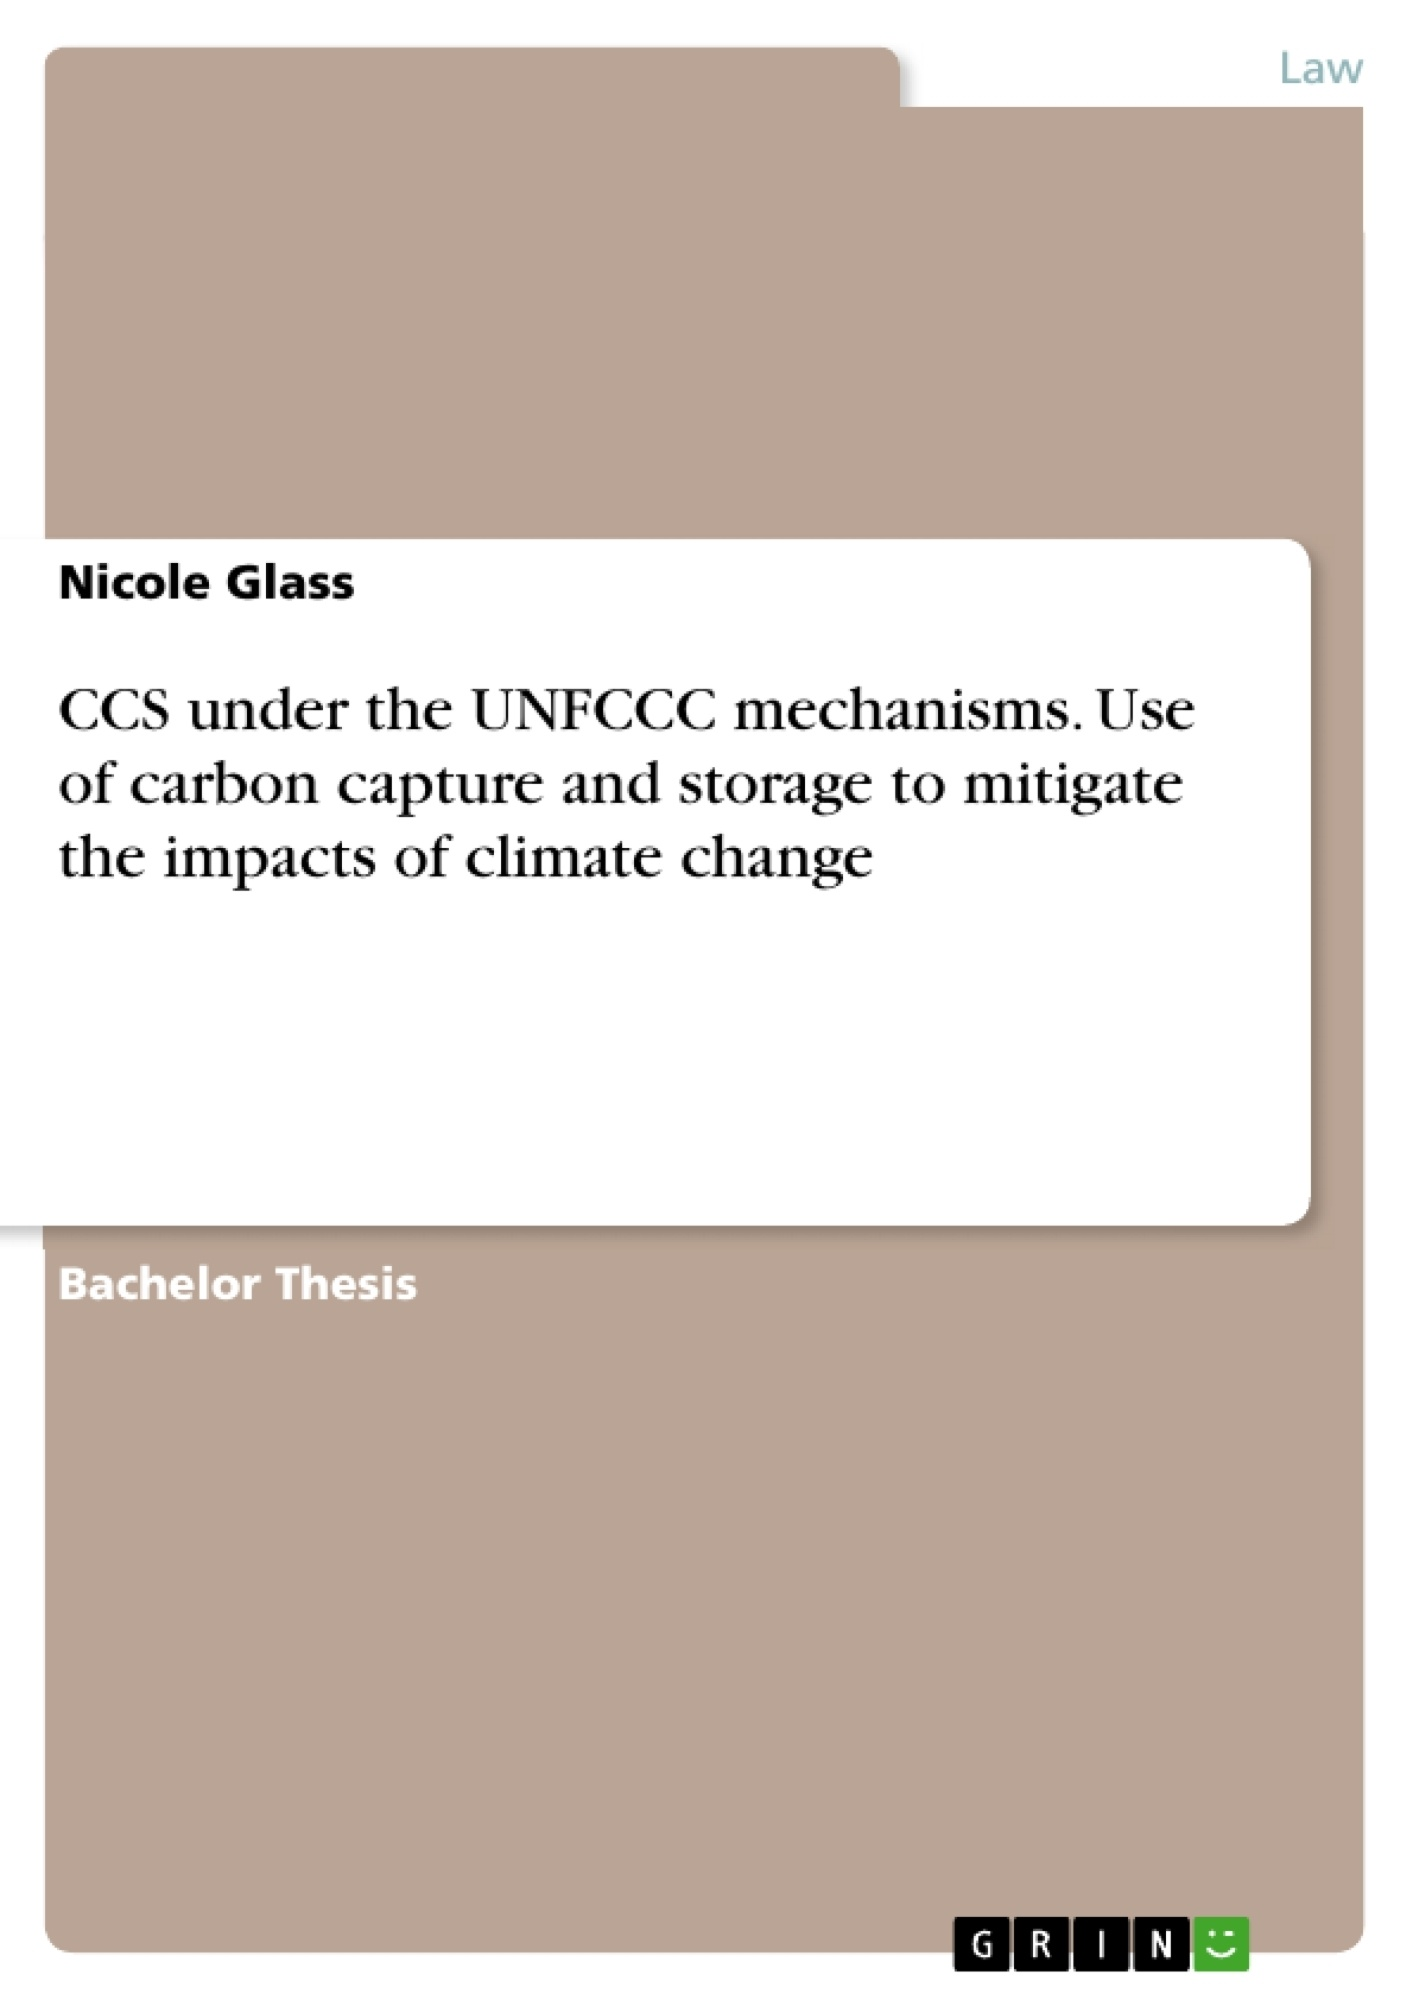 Title: CCS under the UNFCCC mechanisms. Use of carbon capture and storage to mitigate the impacts of climate change